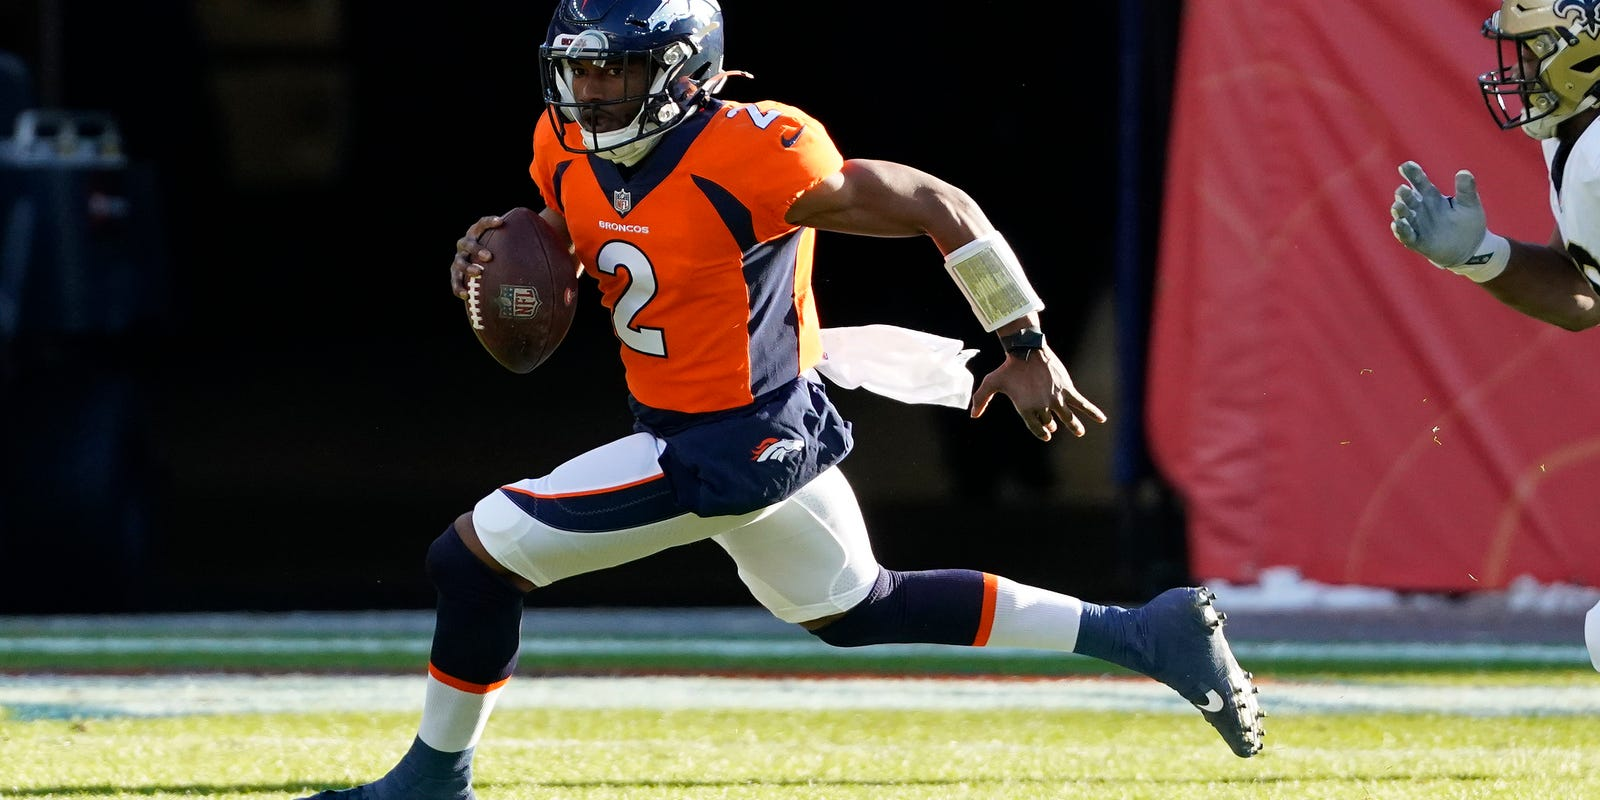 What Kendall Hinton did for the Broncos was incredible